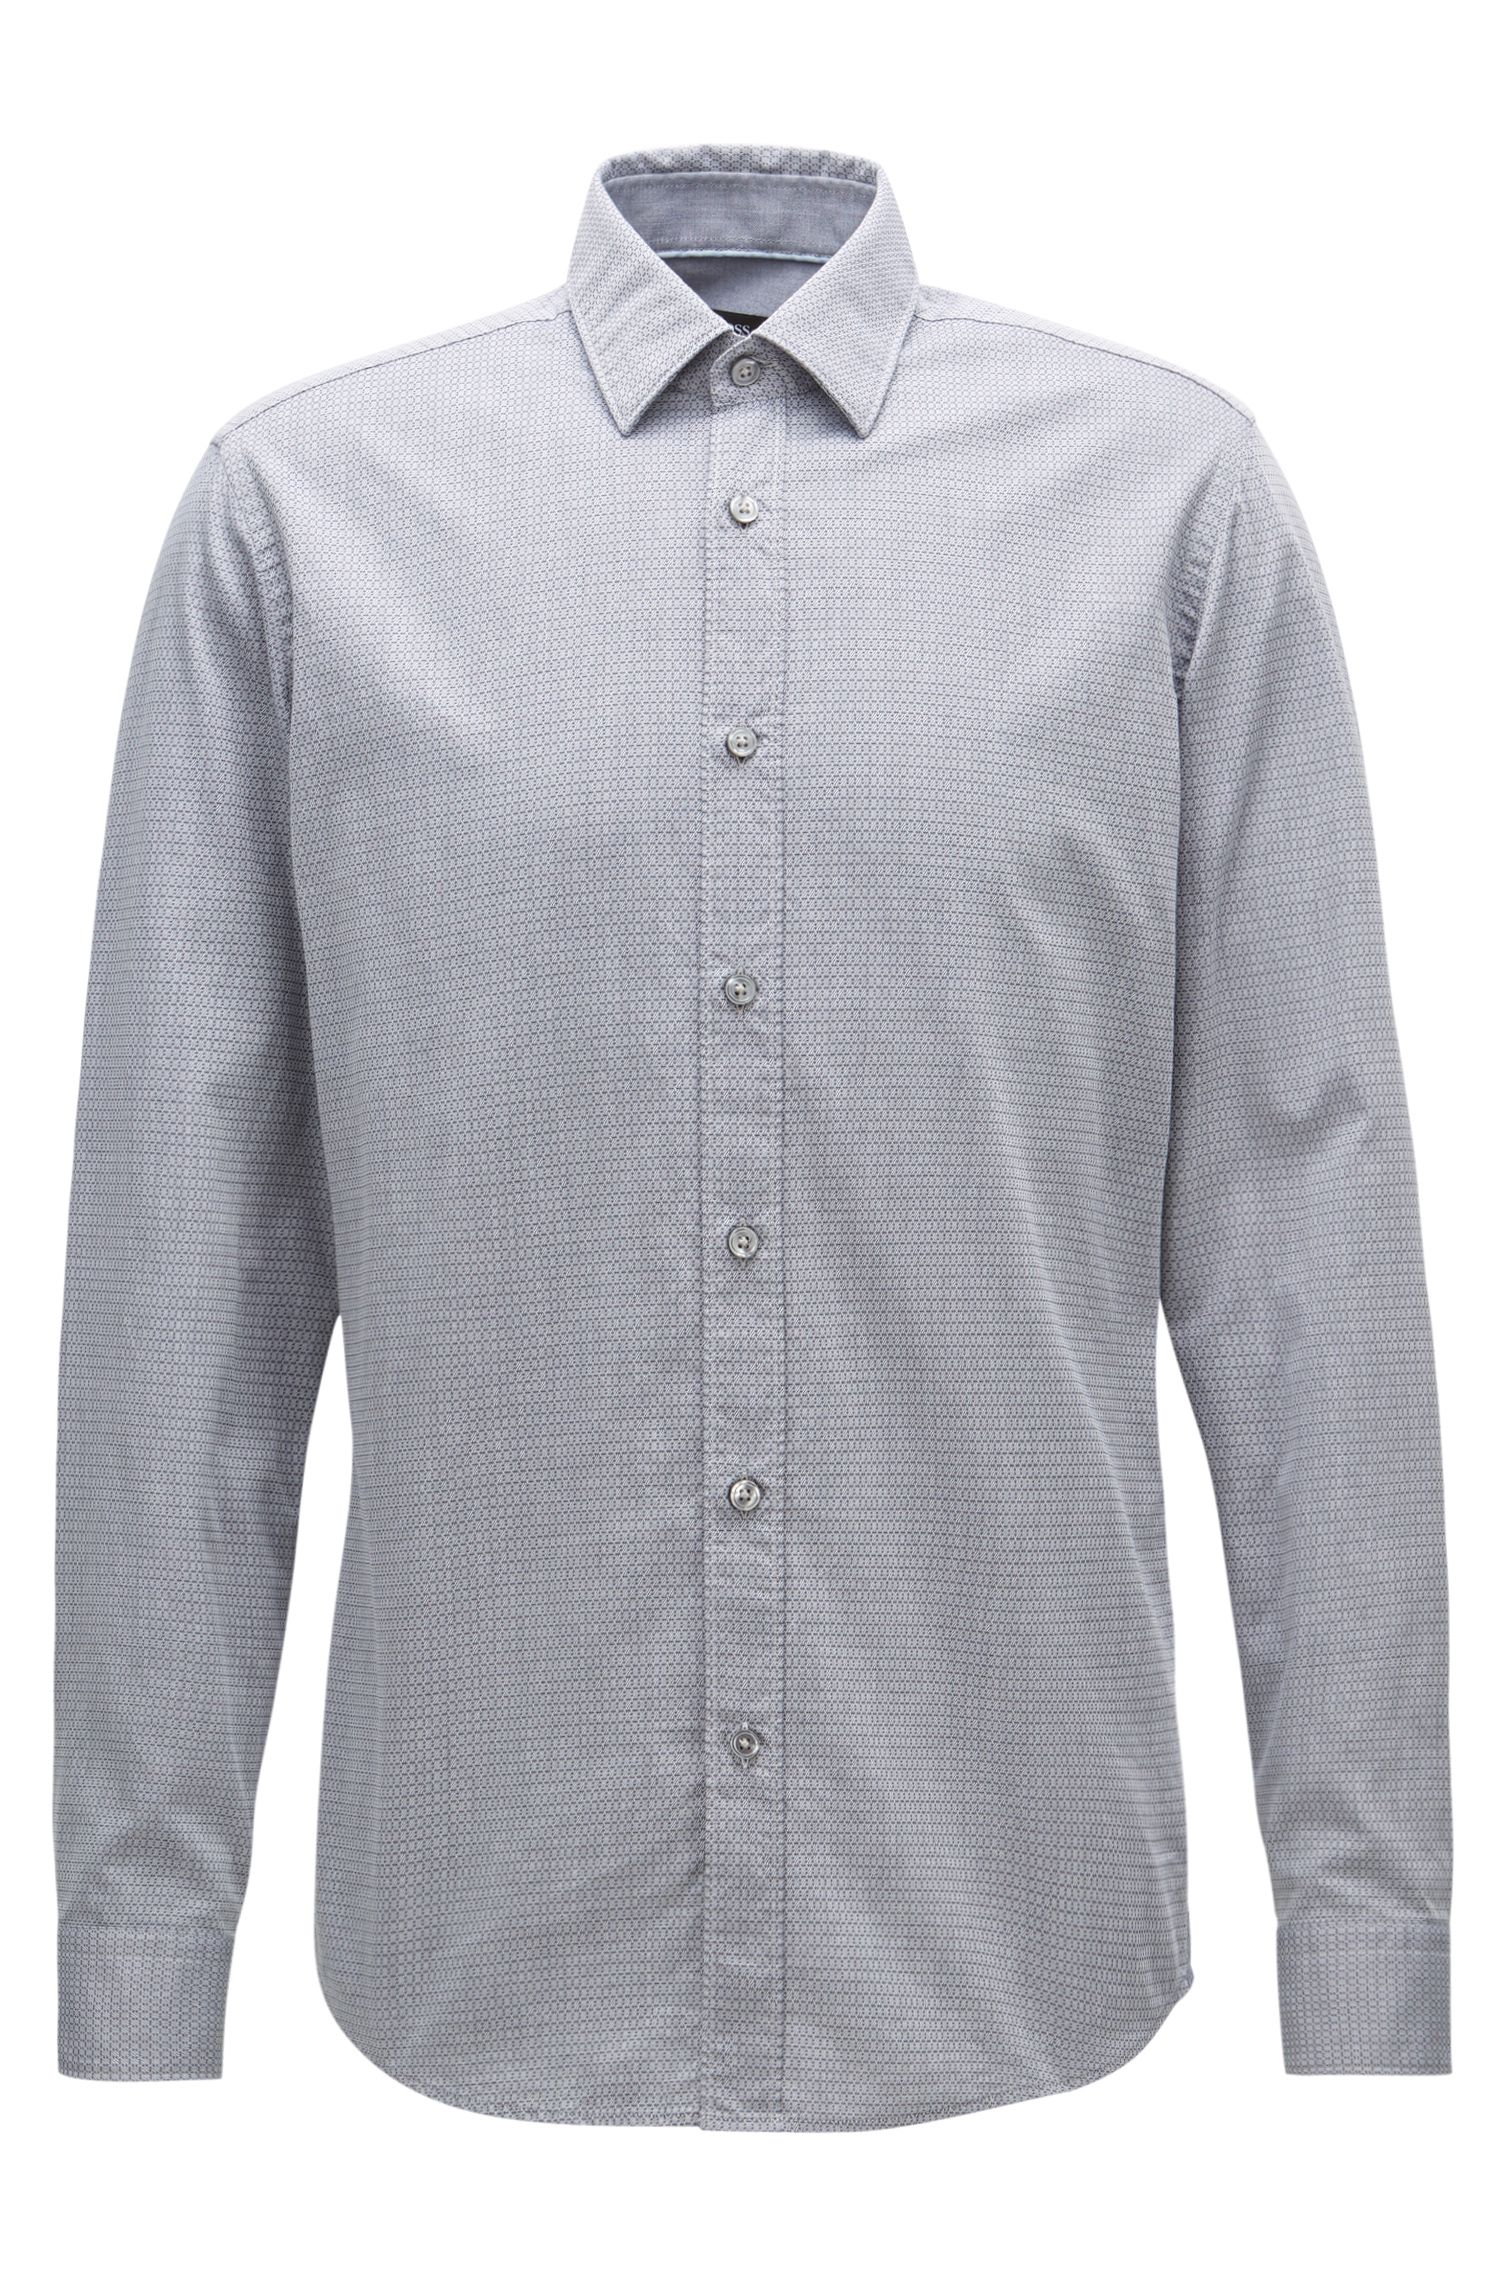 Regular-fit shirt in washed cotton jacquard